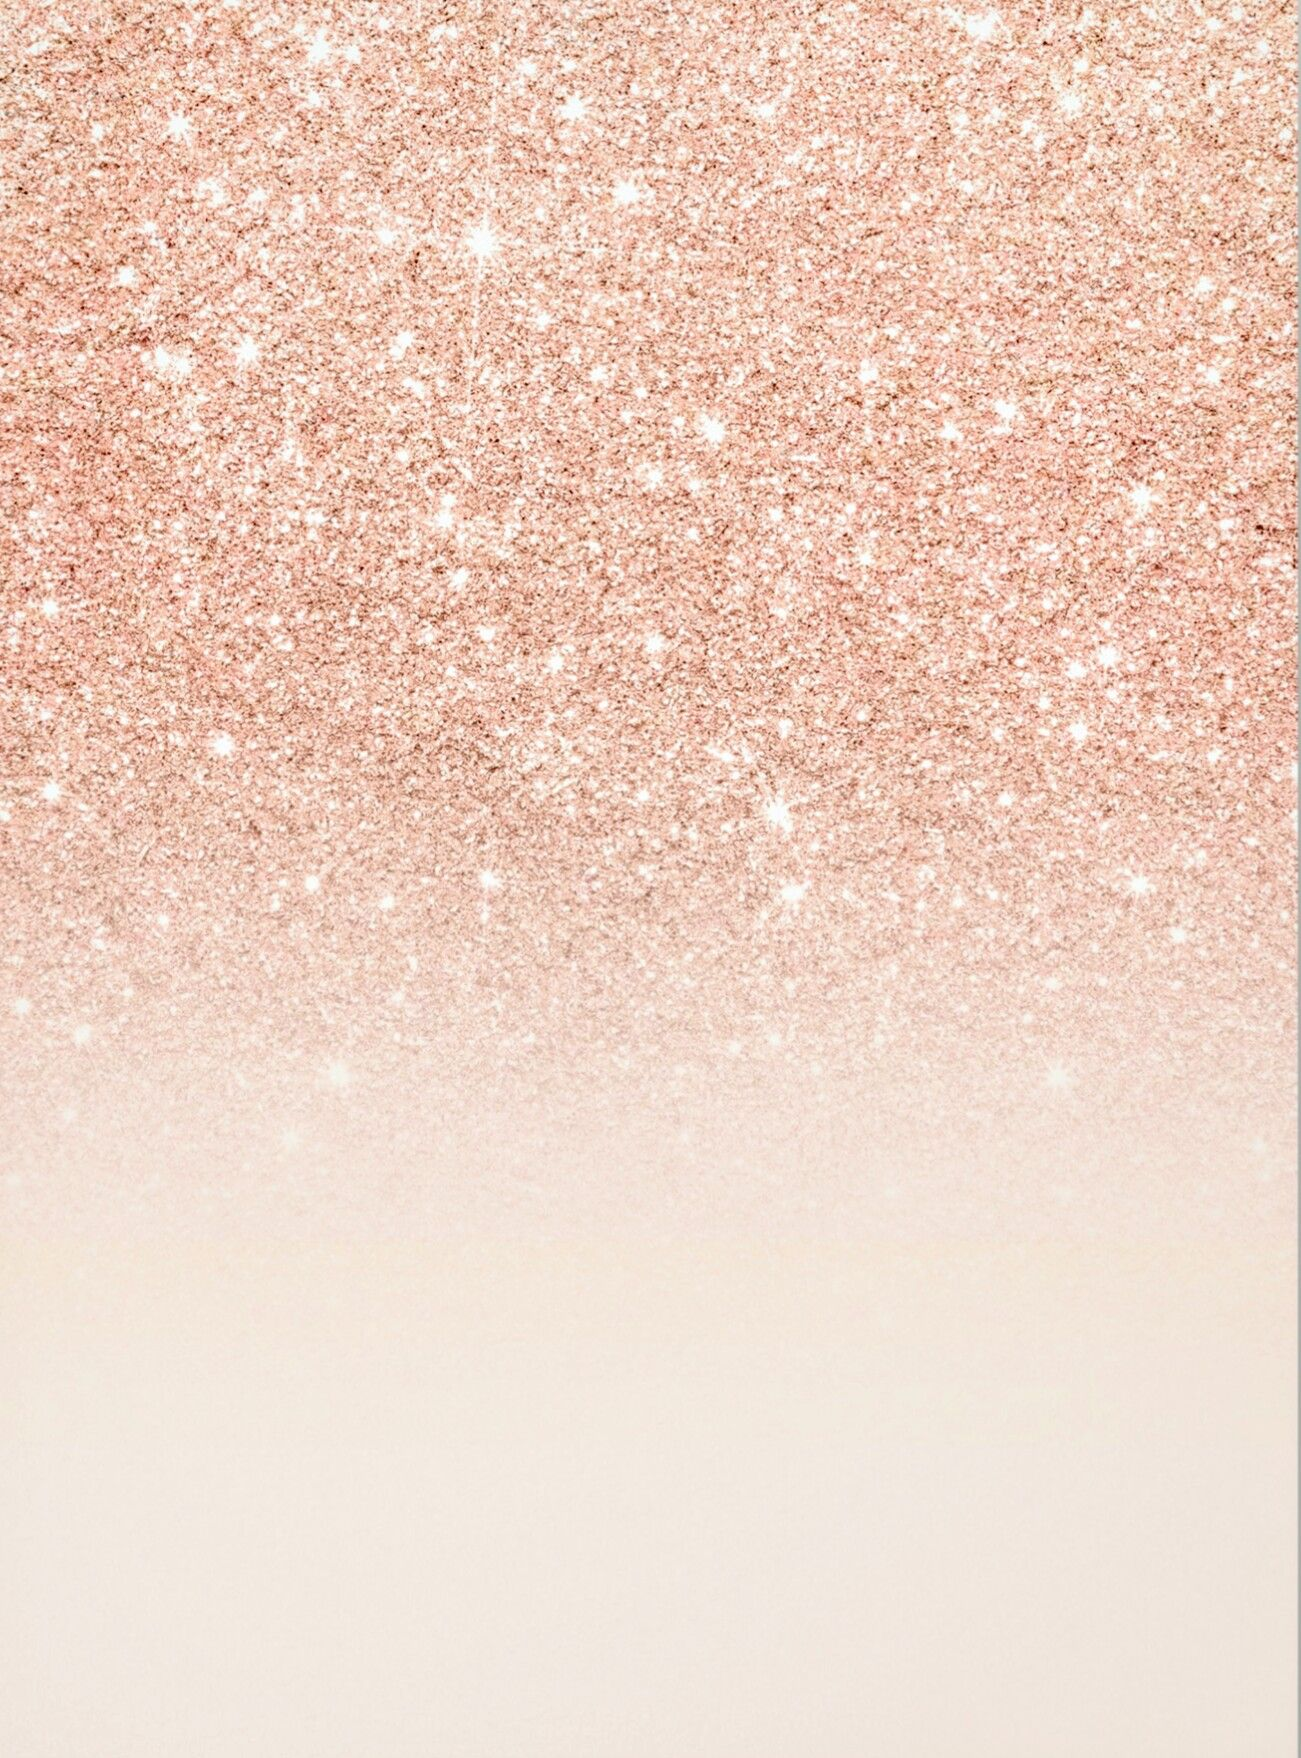 Pinterest xosarahxbethxo w llp p r in 2019 rose - Rose gold glitter iphone wallpaper ...